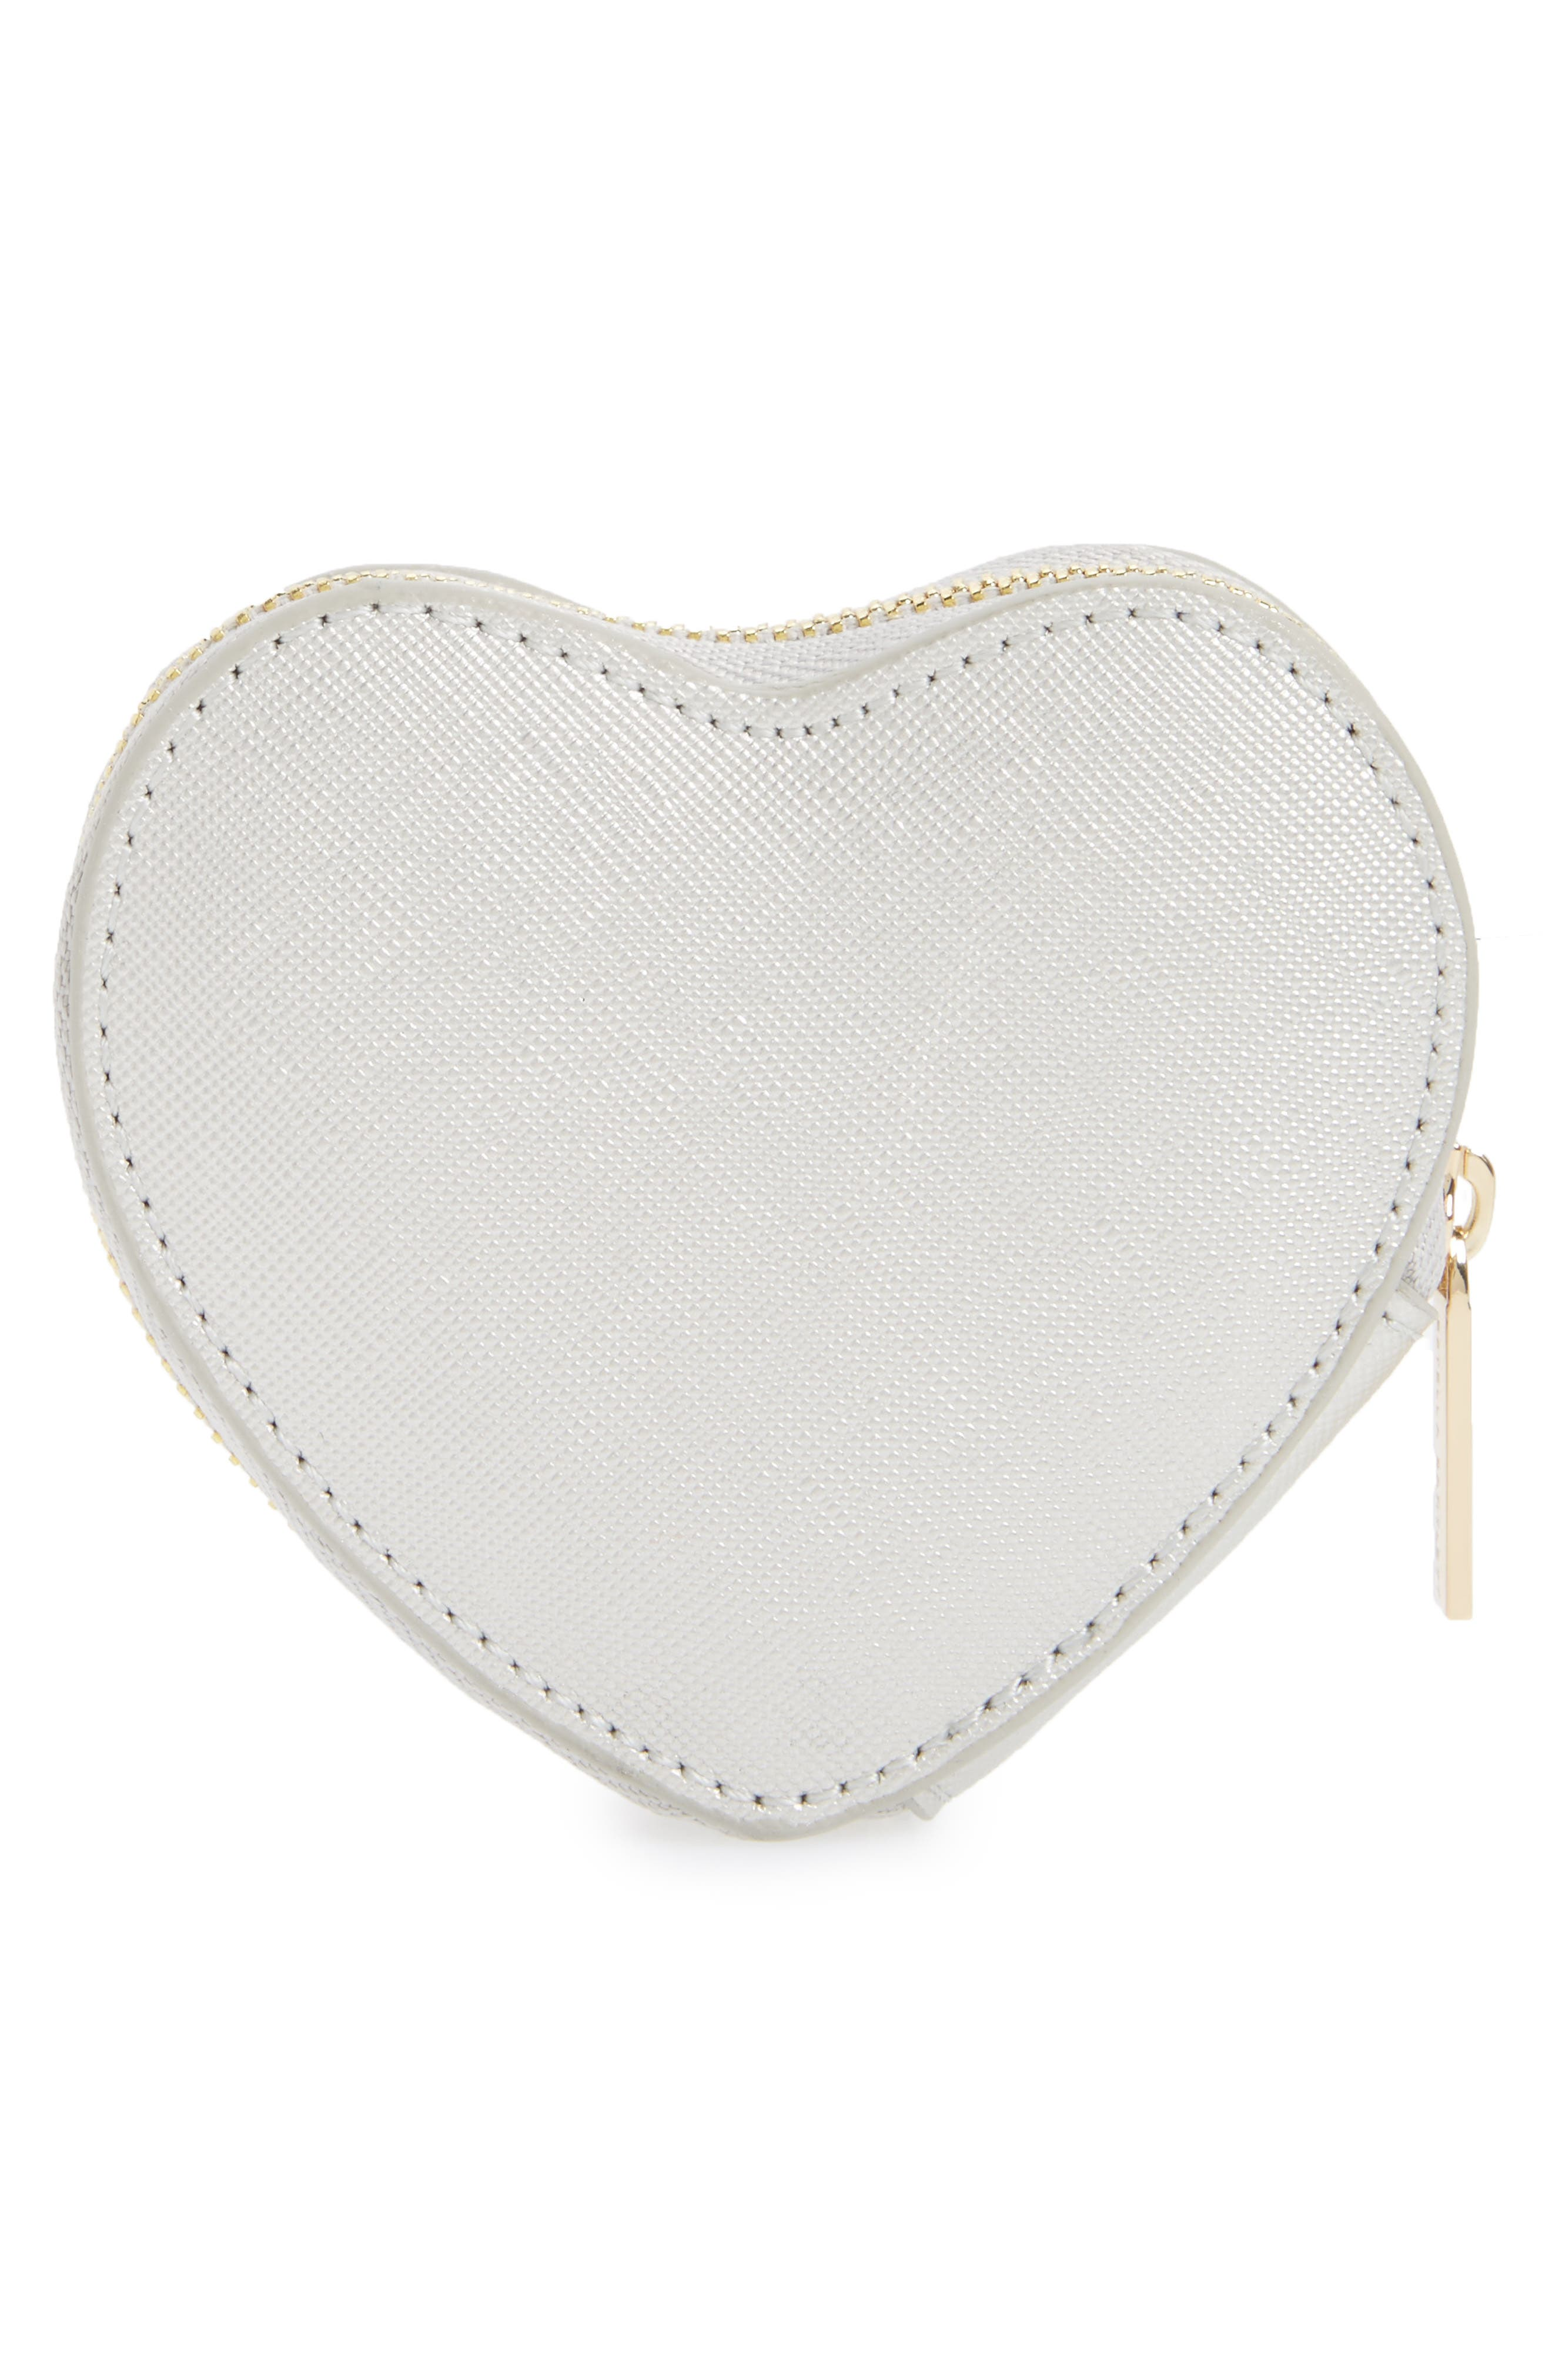 Heart Dream Faux Leather Coin Purse,                             Alternate thumbnail 3, color,